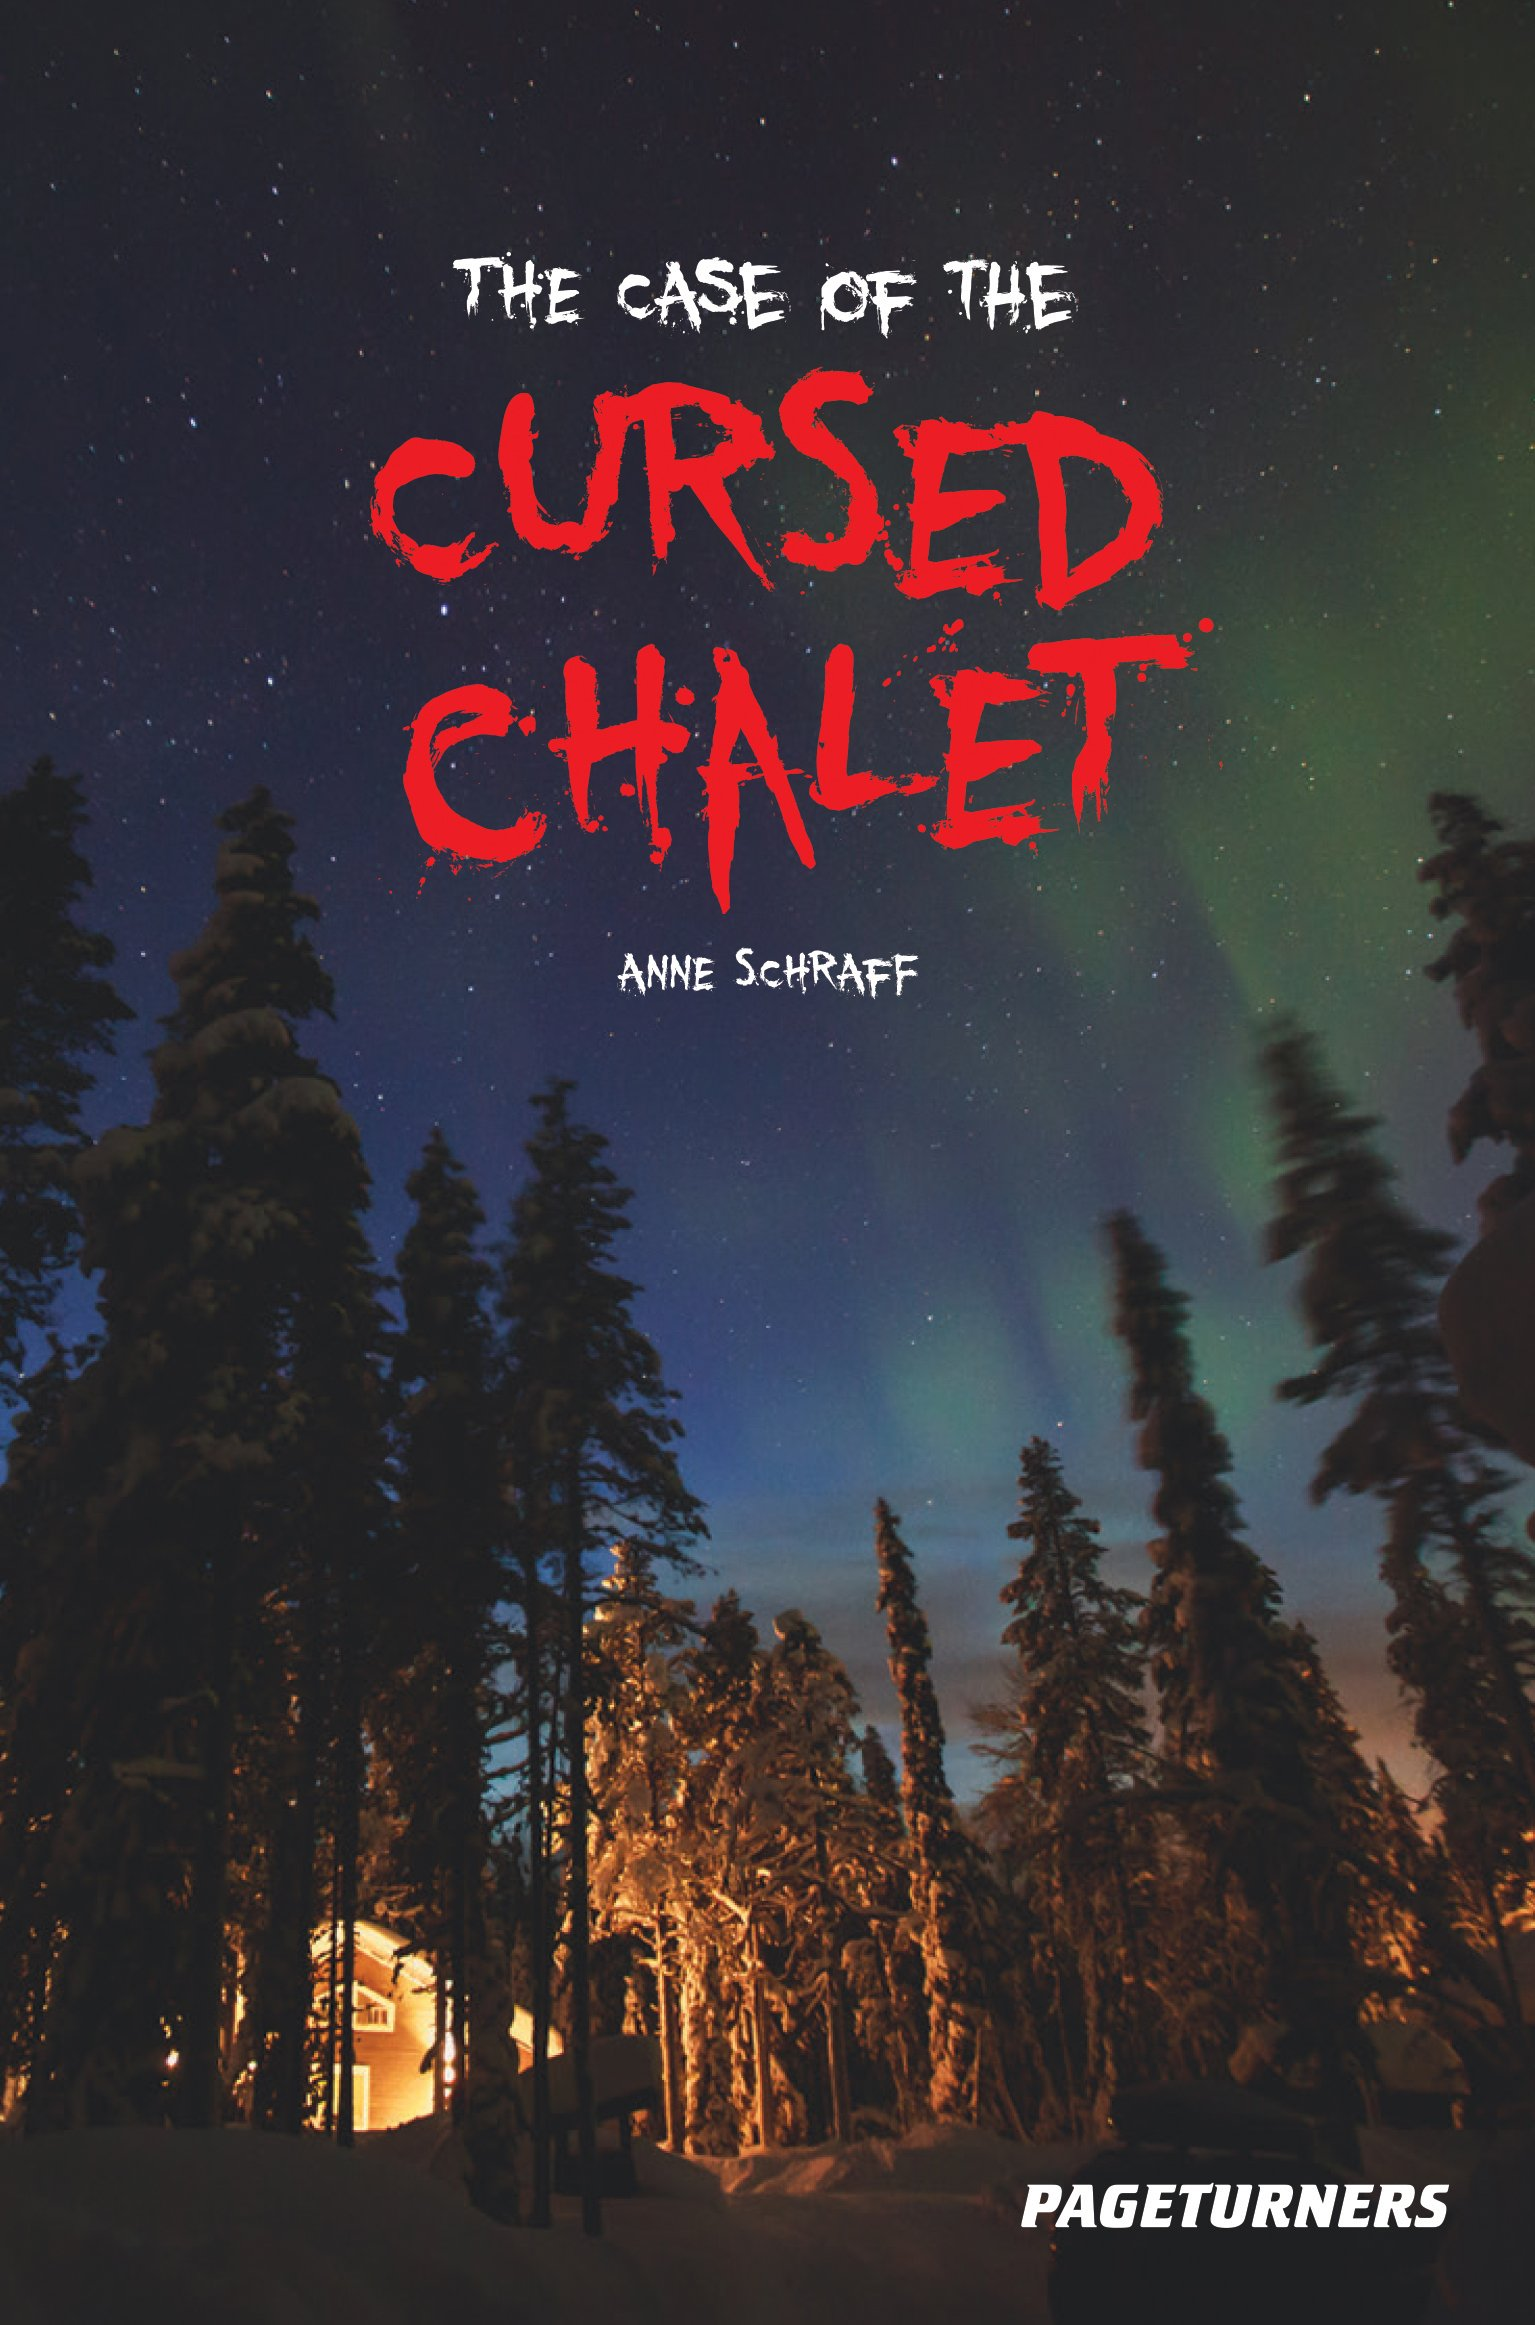 The Case of the Cursed Chalet (Detective) (Pageturners) pdf